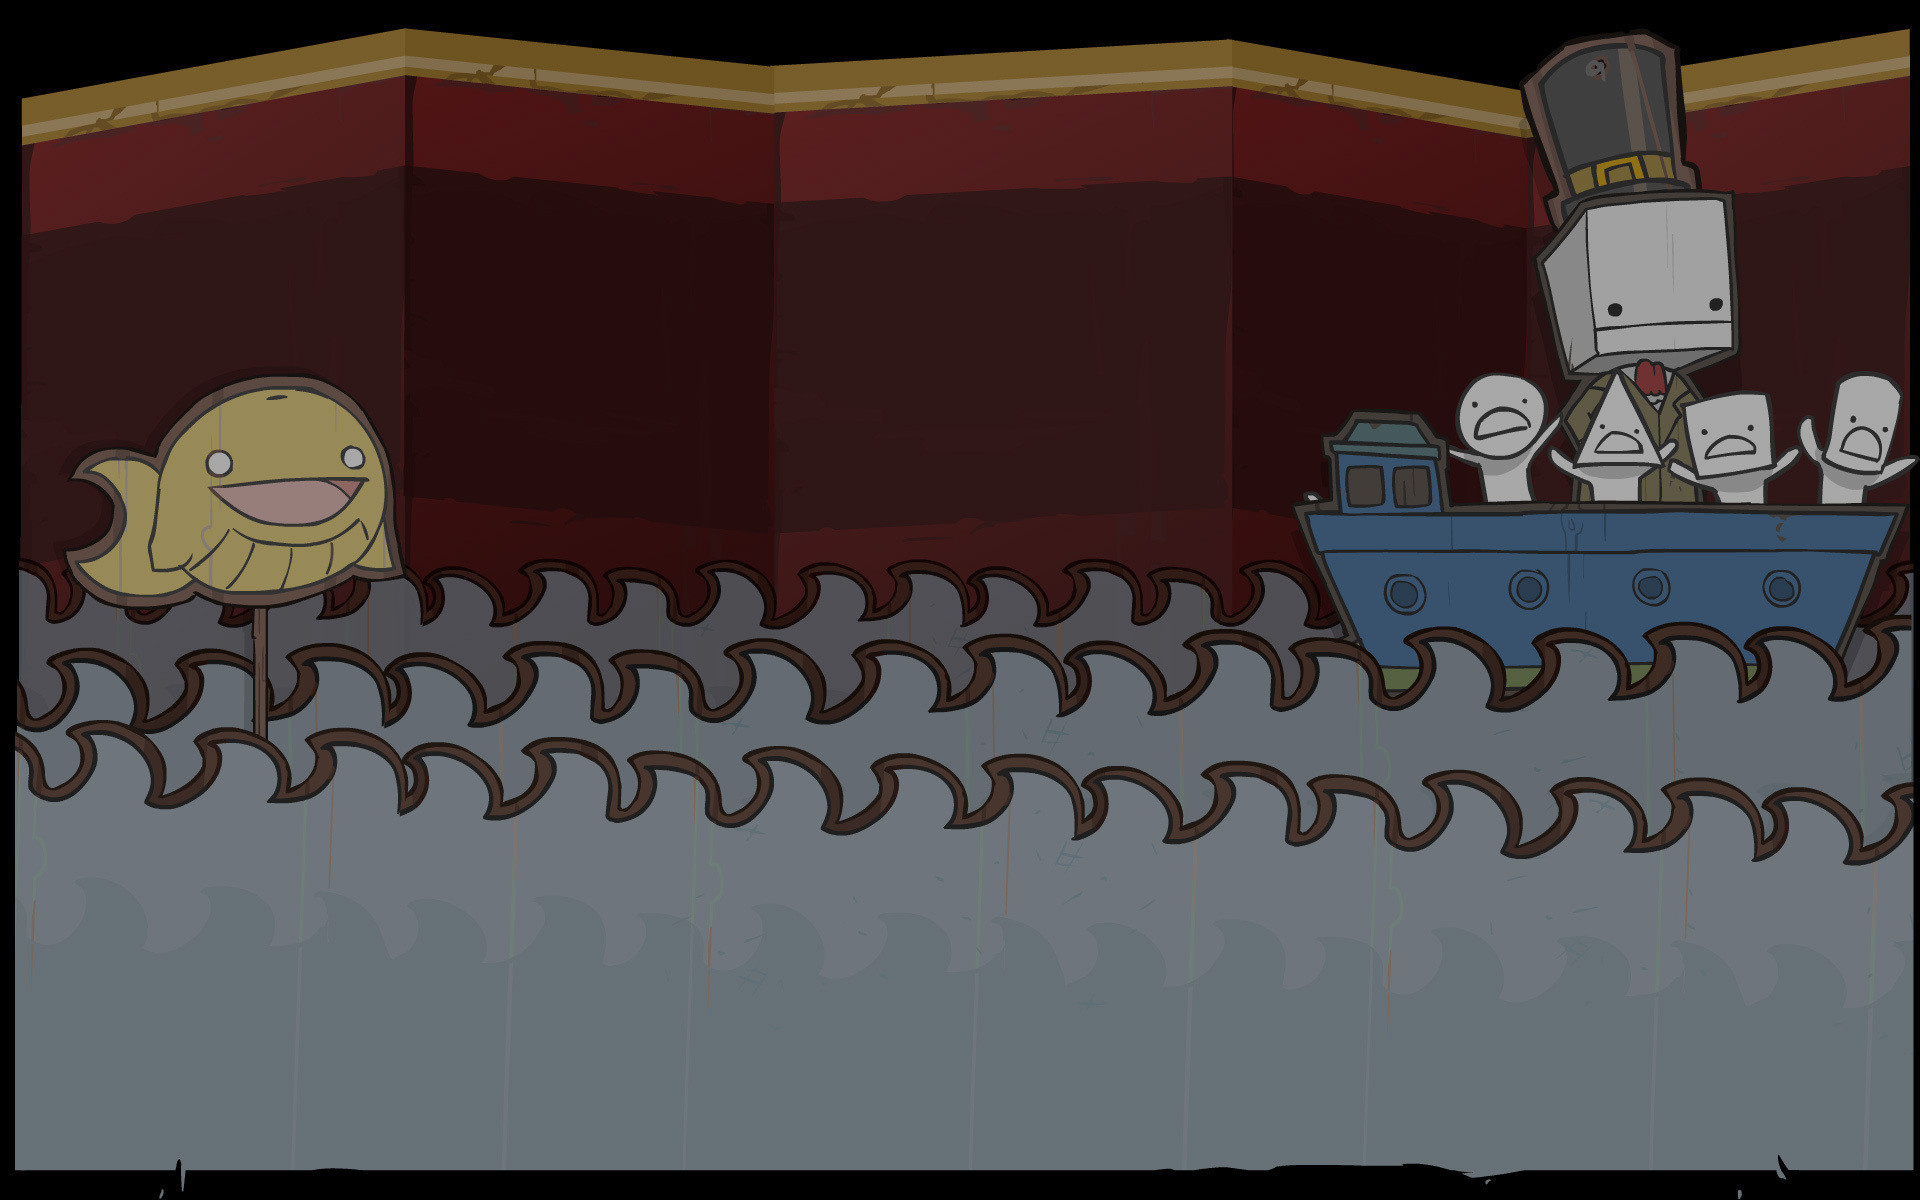 1920x1200 BattleBlock Theater Background Boats, Puppets, and Golden Whale Sharks.jpg